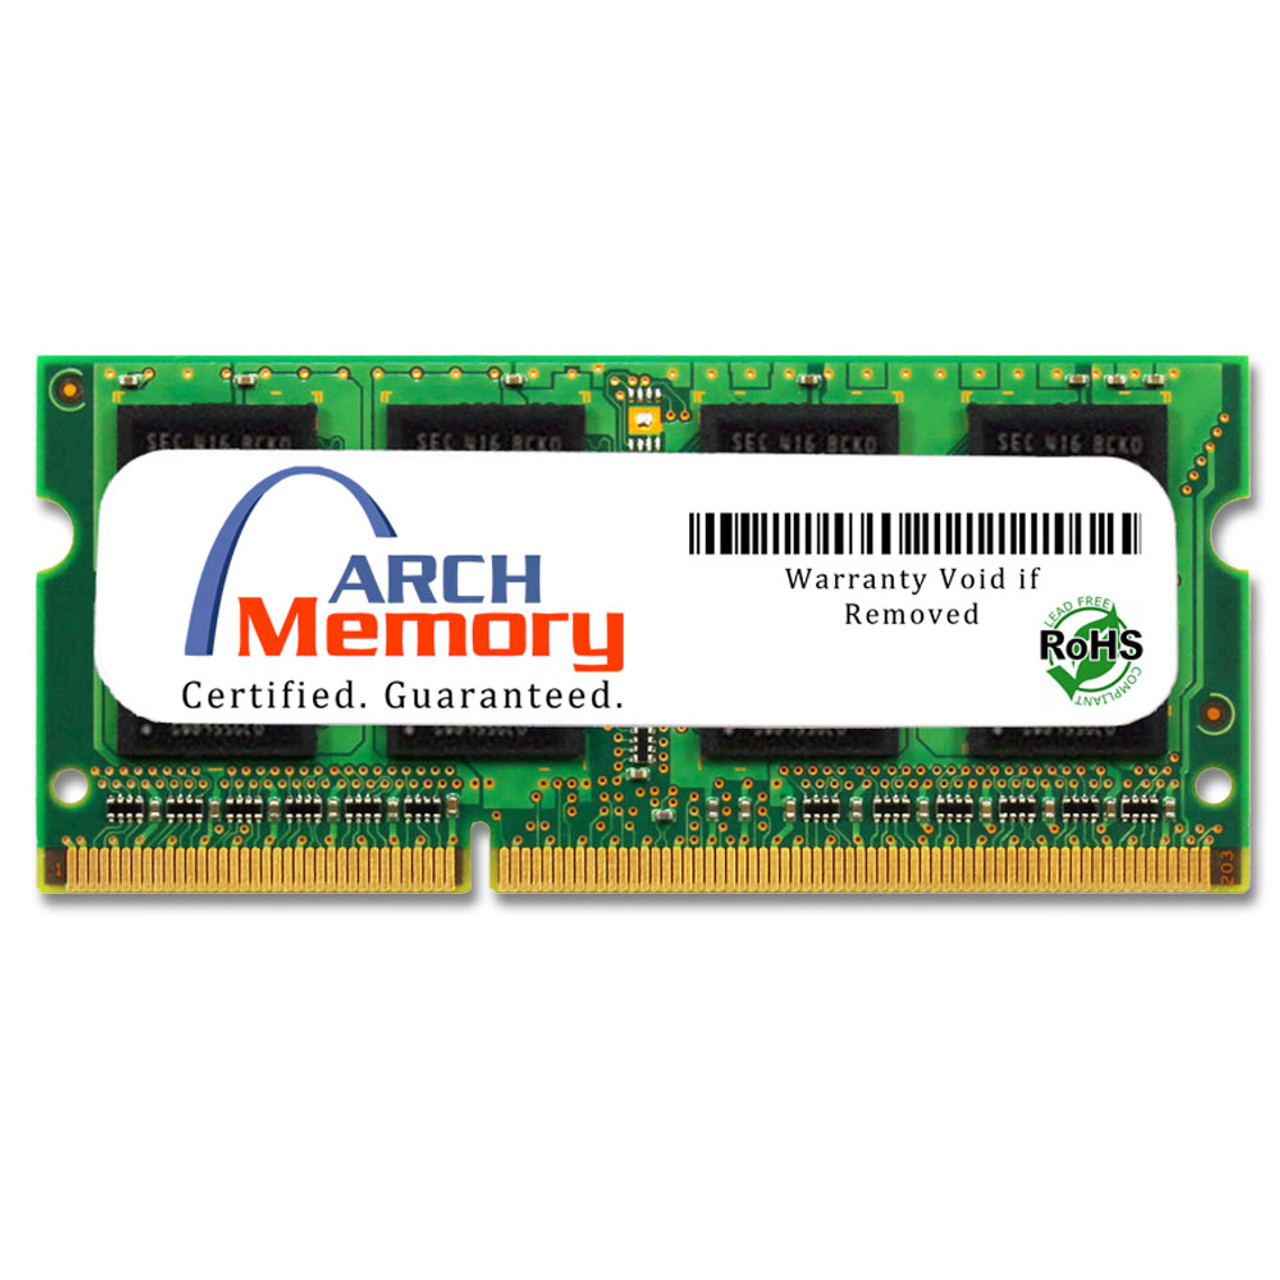 8GB 204-Pin DDR3-1600 PC3-12800 Sodimm RAM